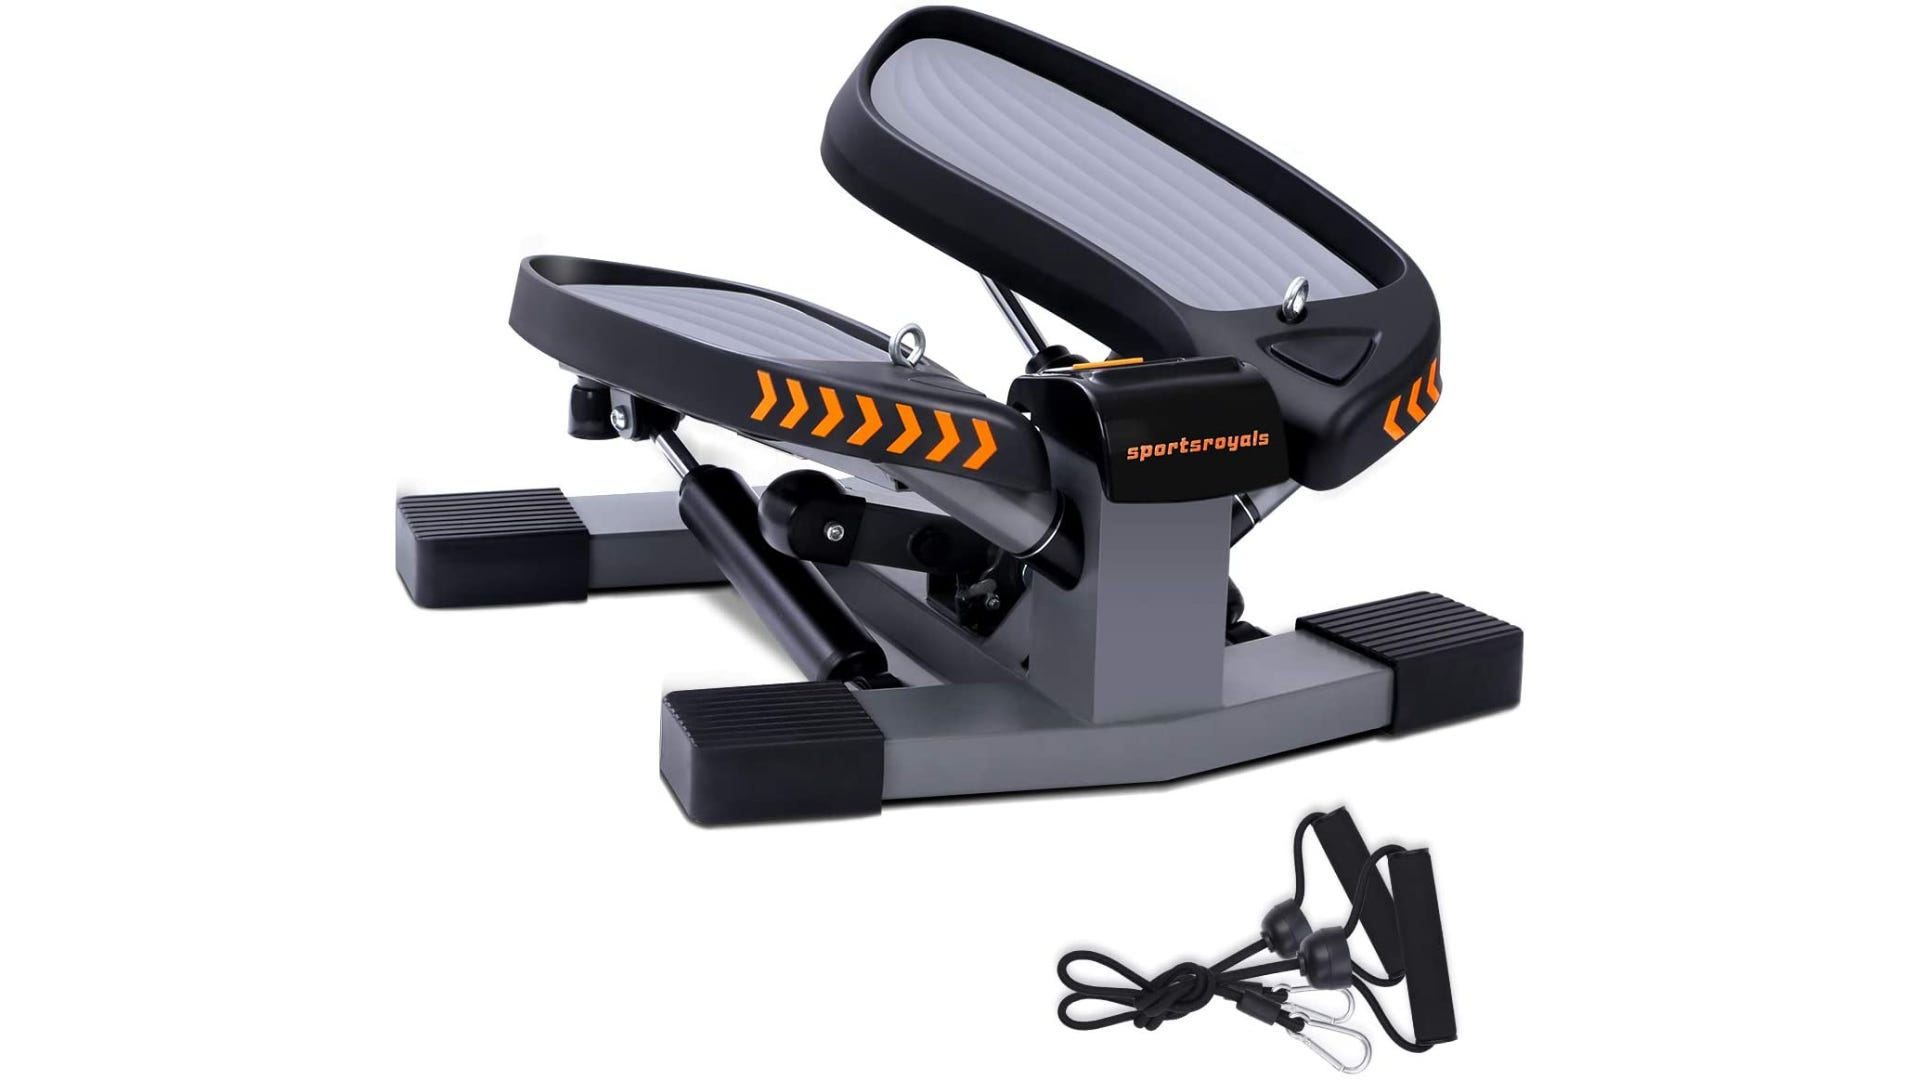 a small stair stepper machine with two resistance bands on the side